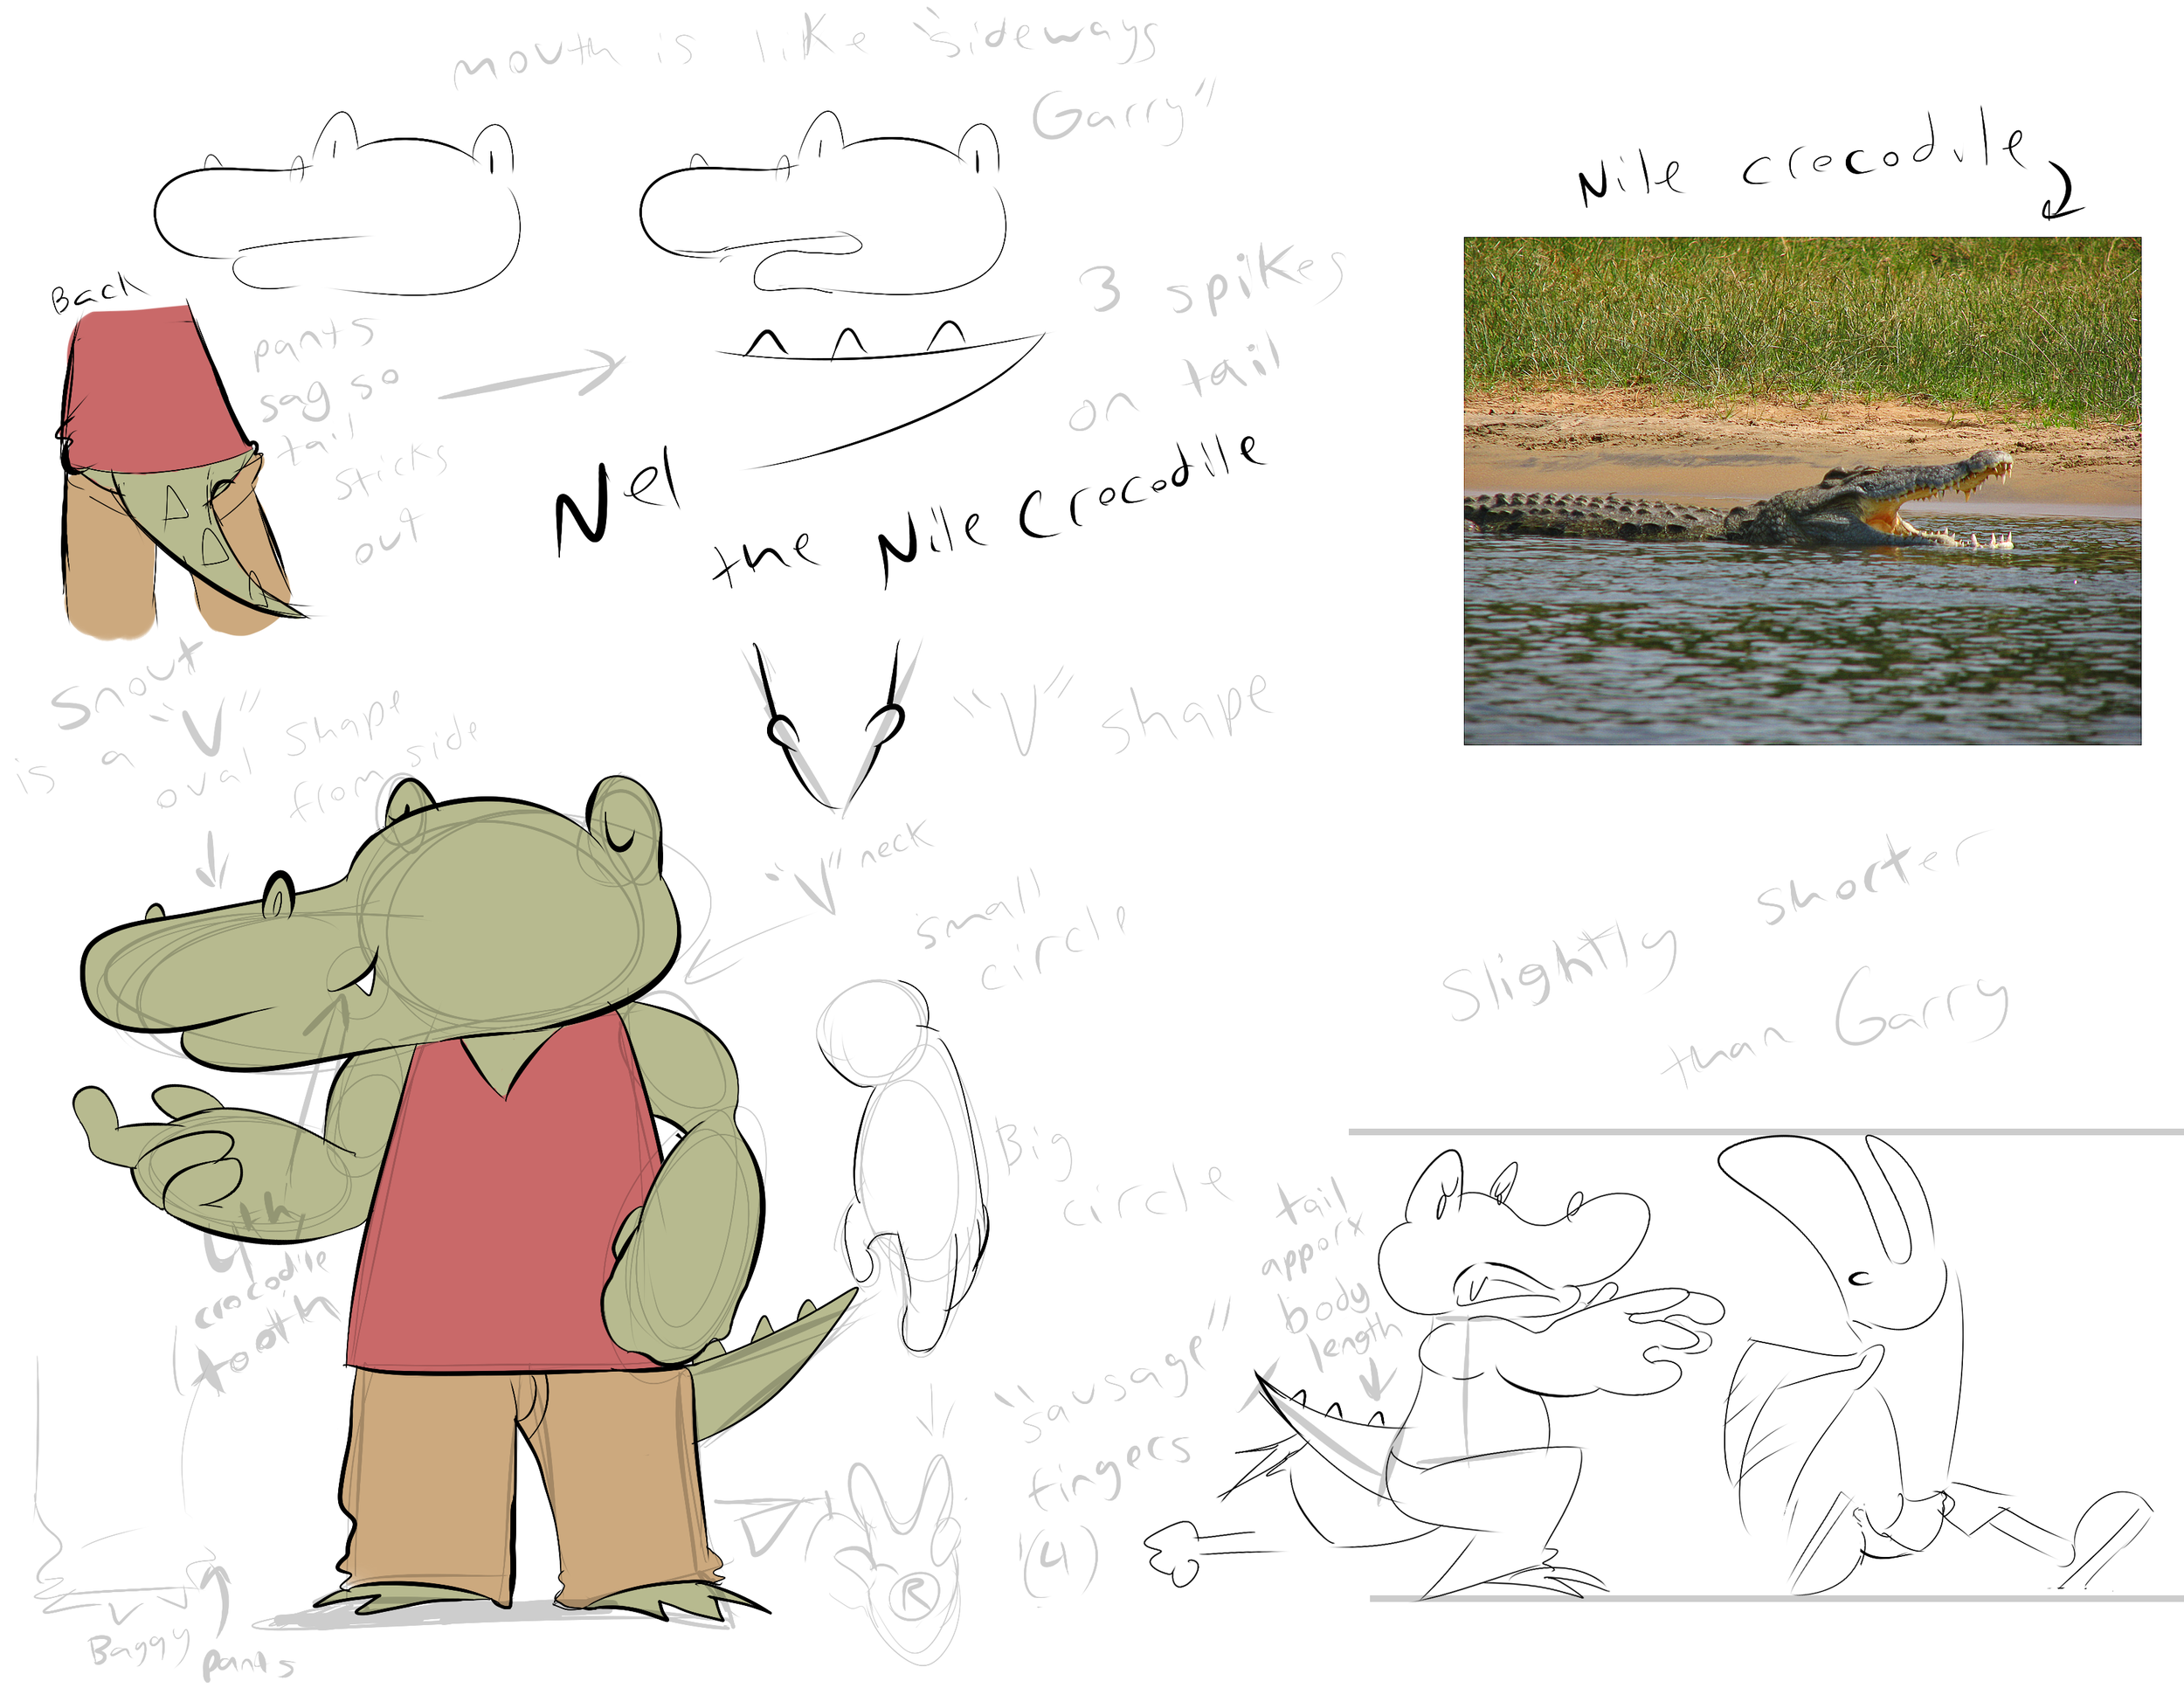 I redesigned this character about over half a year later. Kept his trade mark pink shirt, but this is when I made him a crocodile instead (crocodile works better with the name Nel in my head). His more rounded beak shows the more crocodile resemblance.